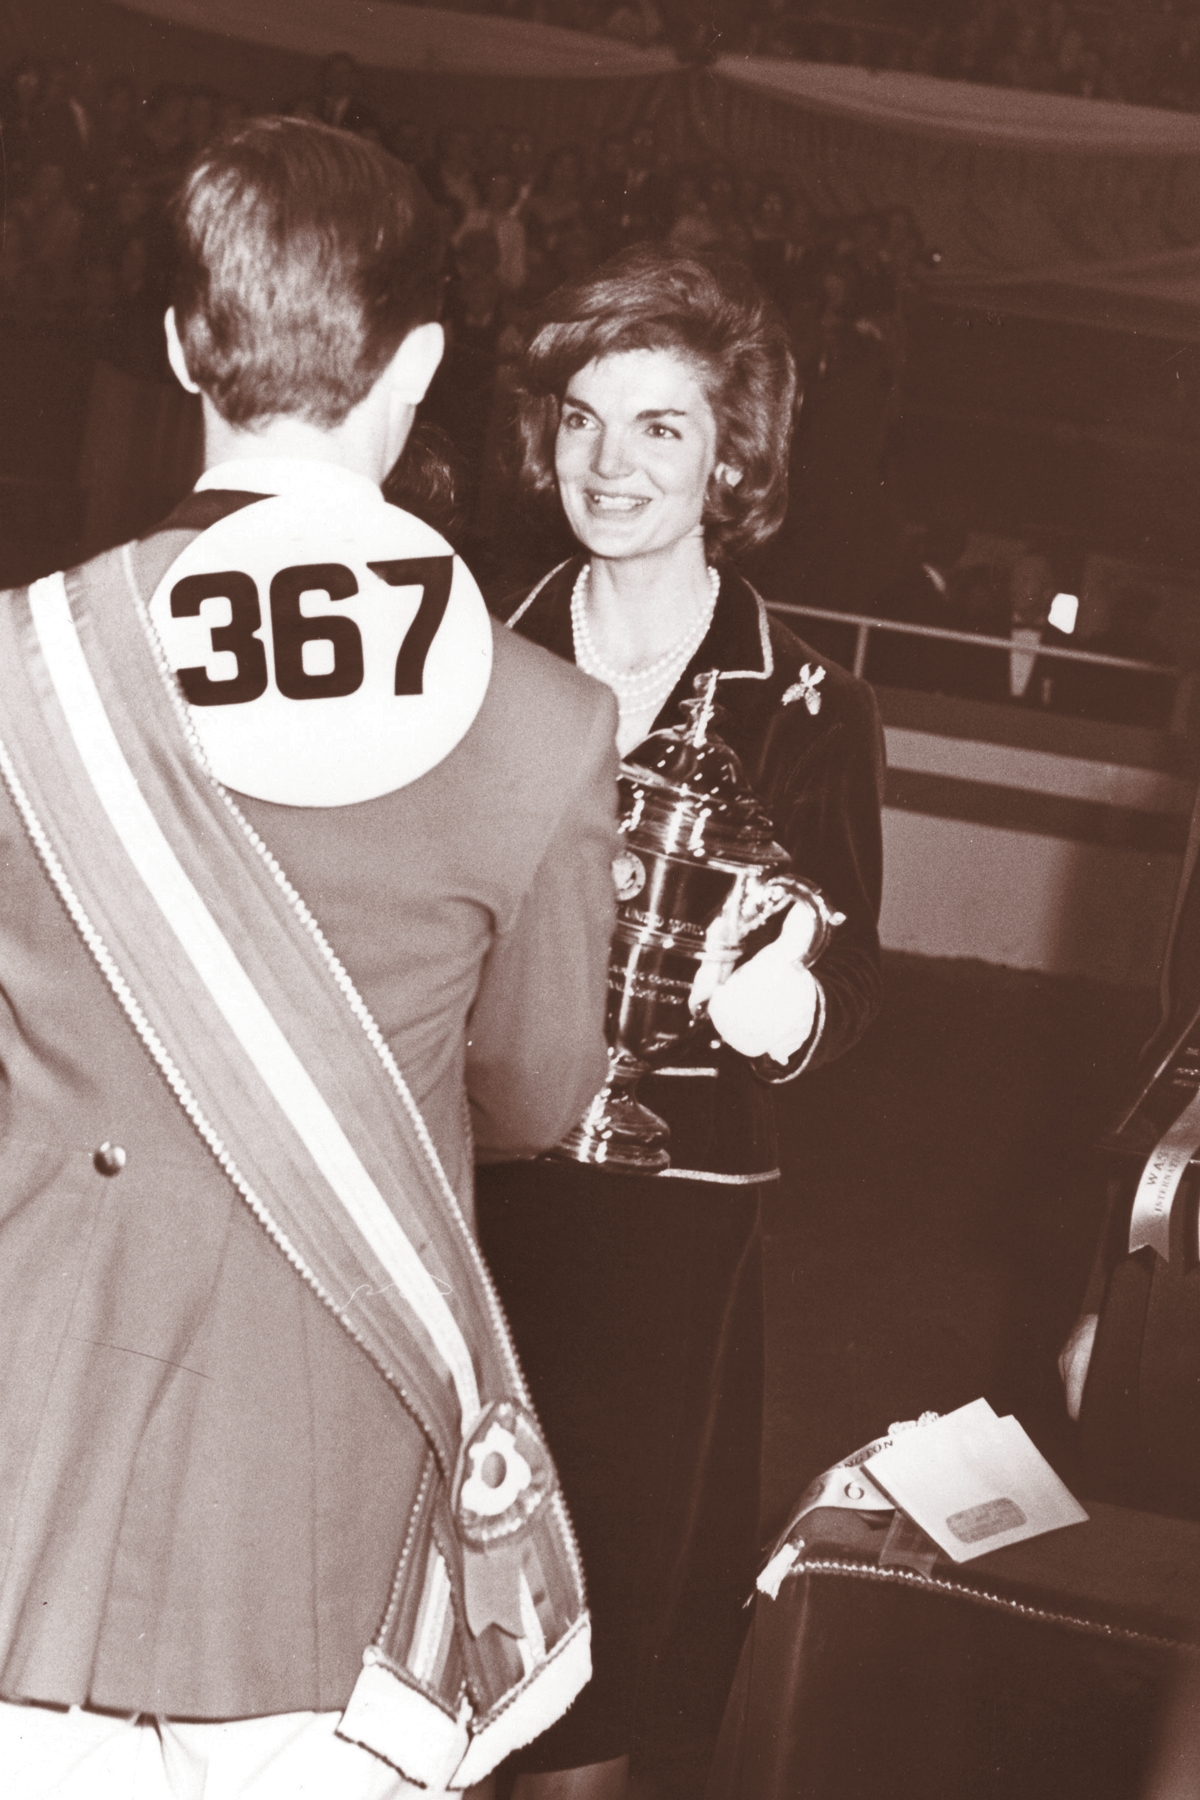 Jackie Kennedy presenting the President's Cup trophy, which she commissioned from Tiffany's, at the Washington International Horse Show.